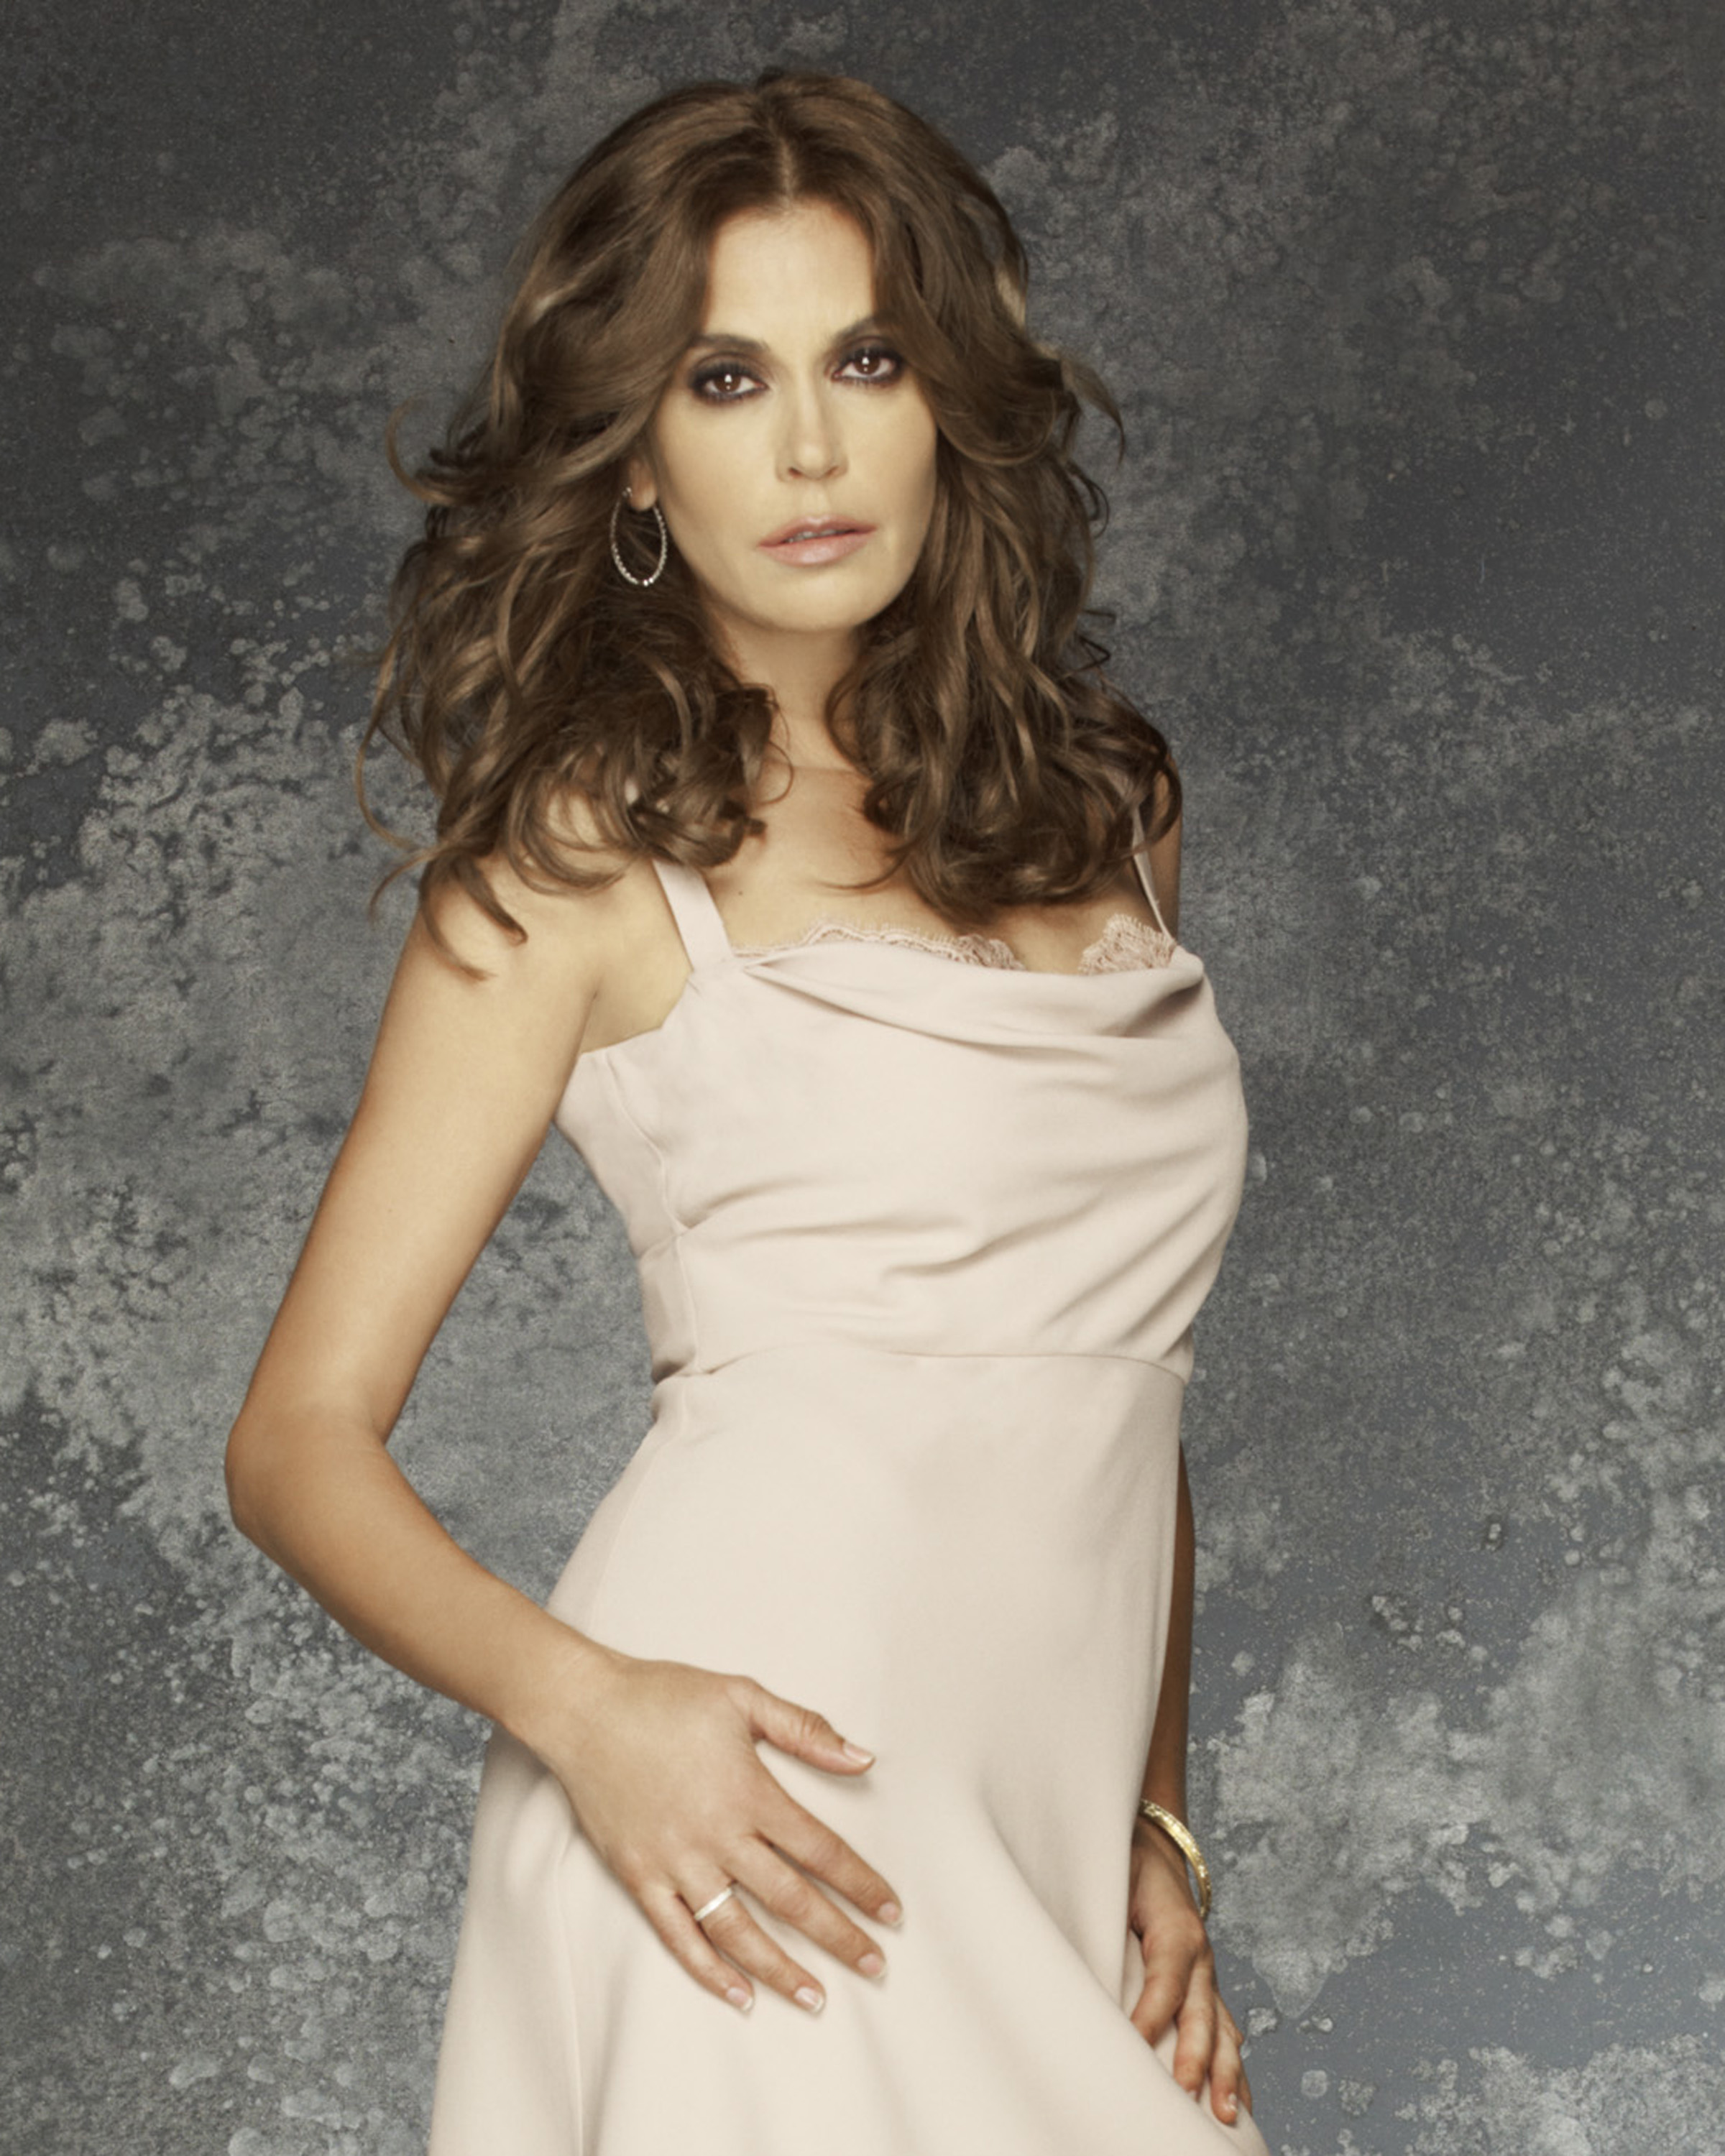 teri hatcher wikipedia